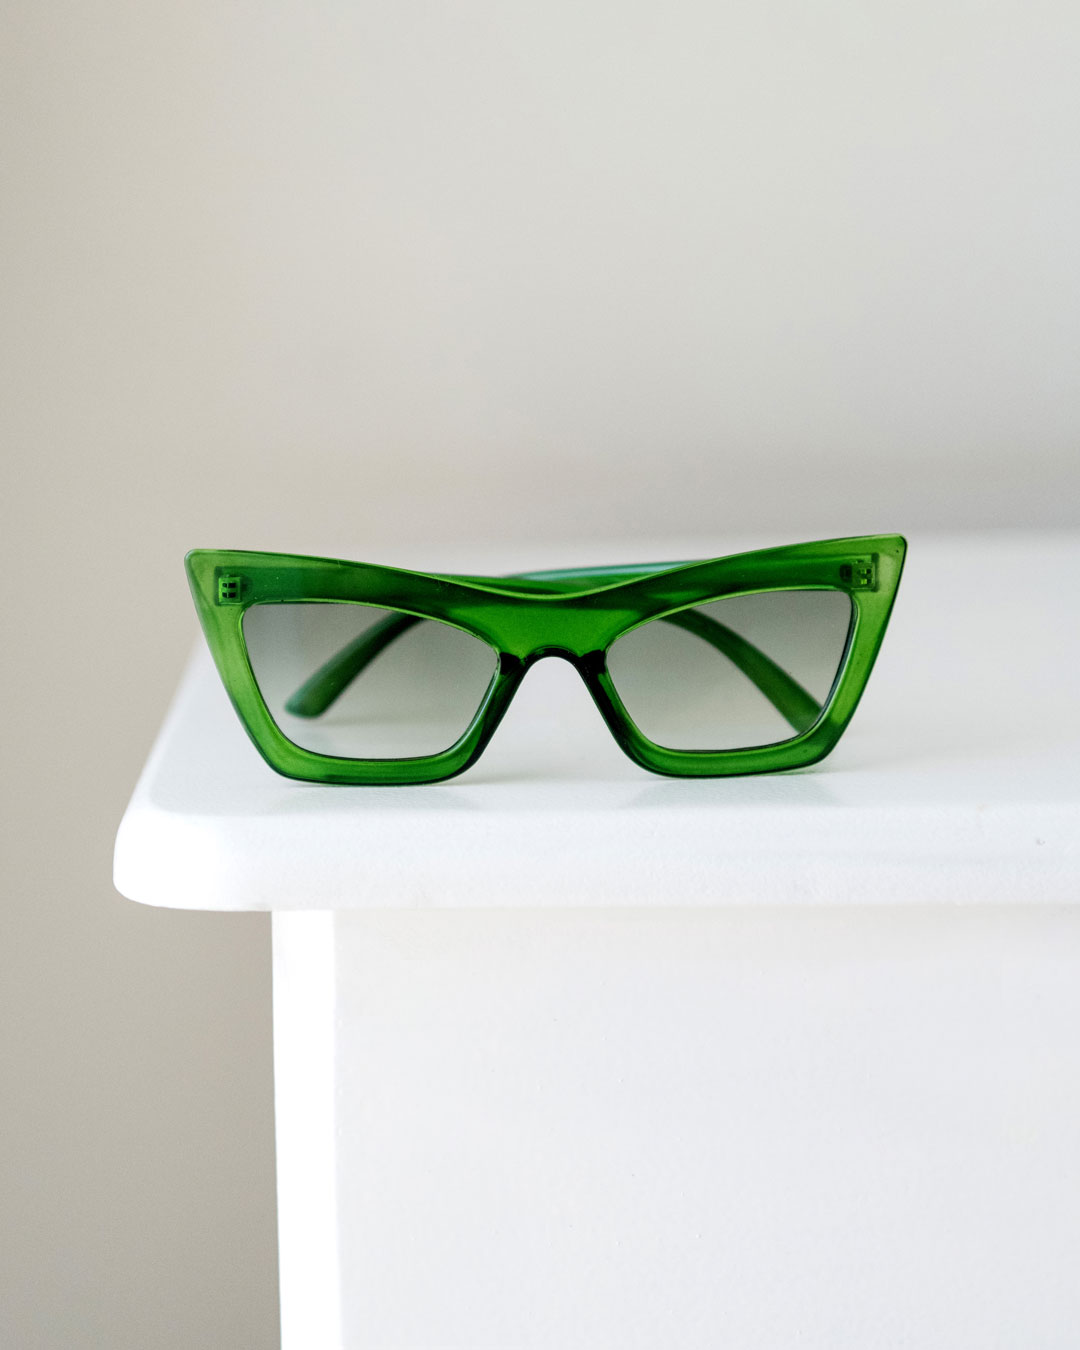 An emerald green cat-eye sunglass style sits on top of a white table.